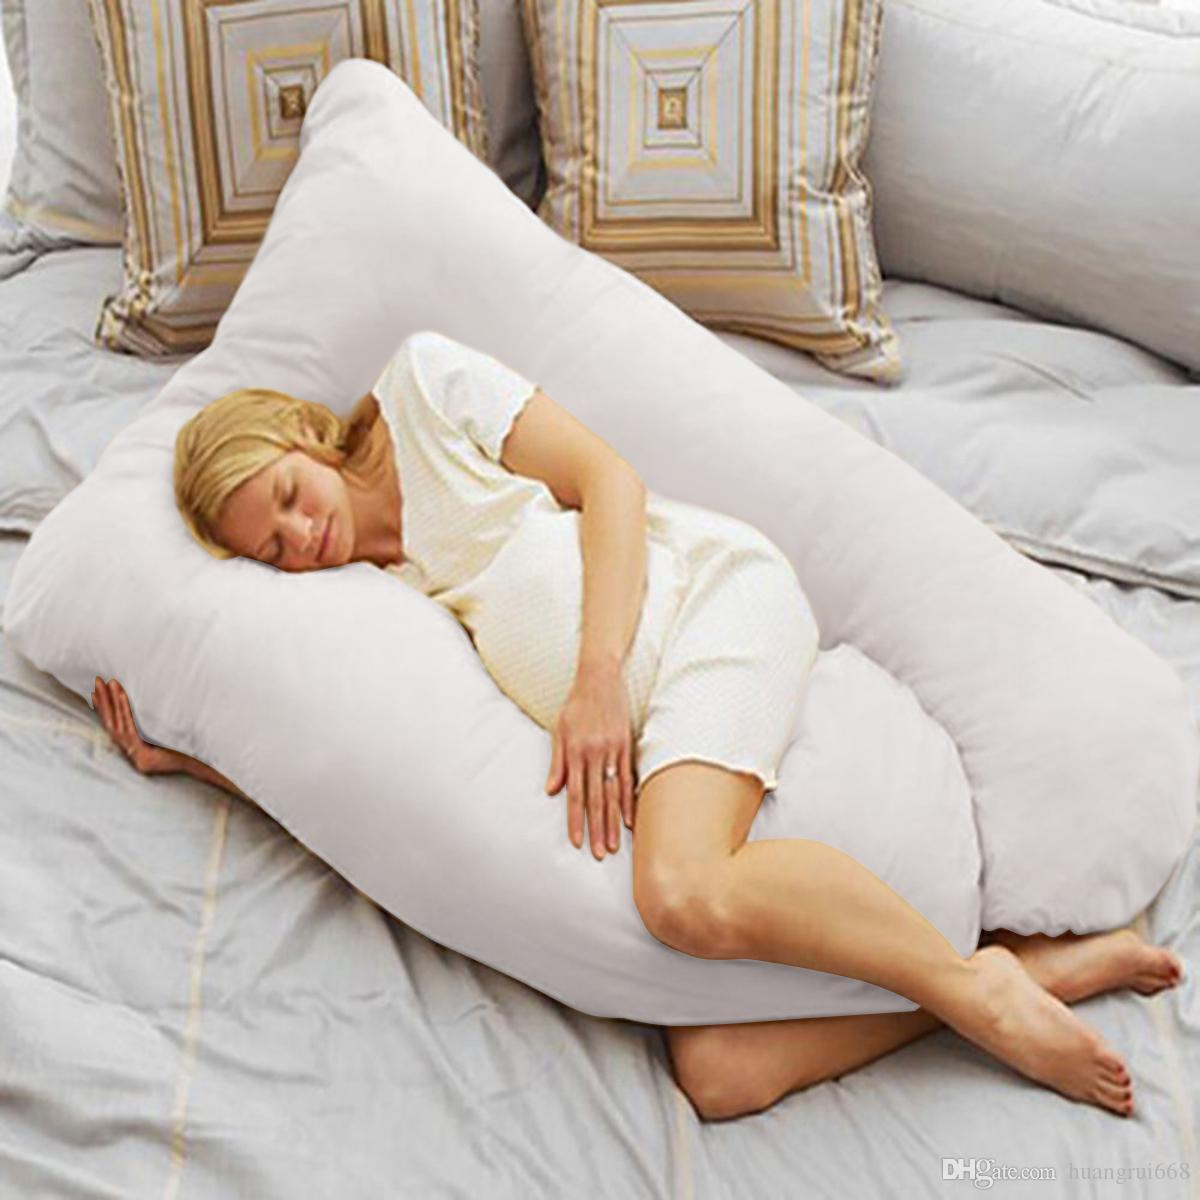 pillows cozy pregnancy best body for comfort pillow mom discover